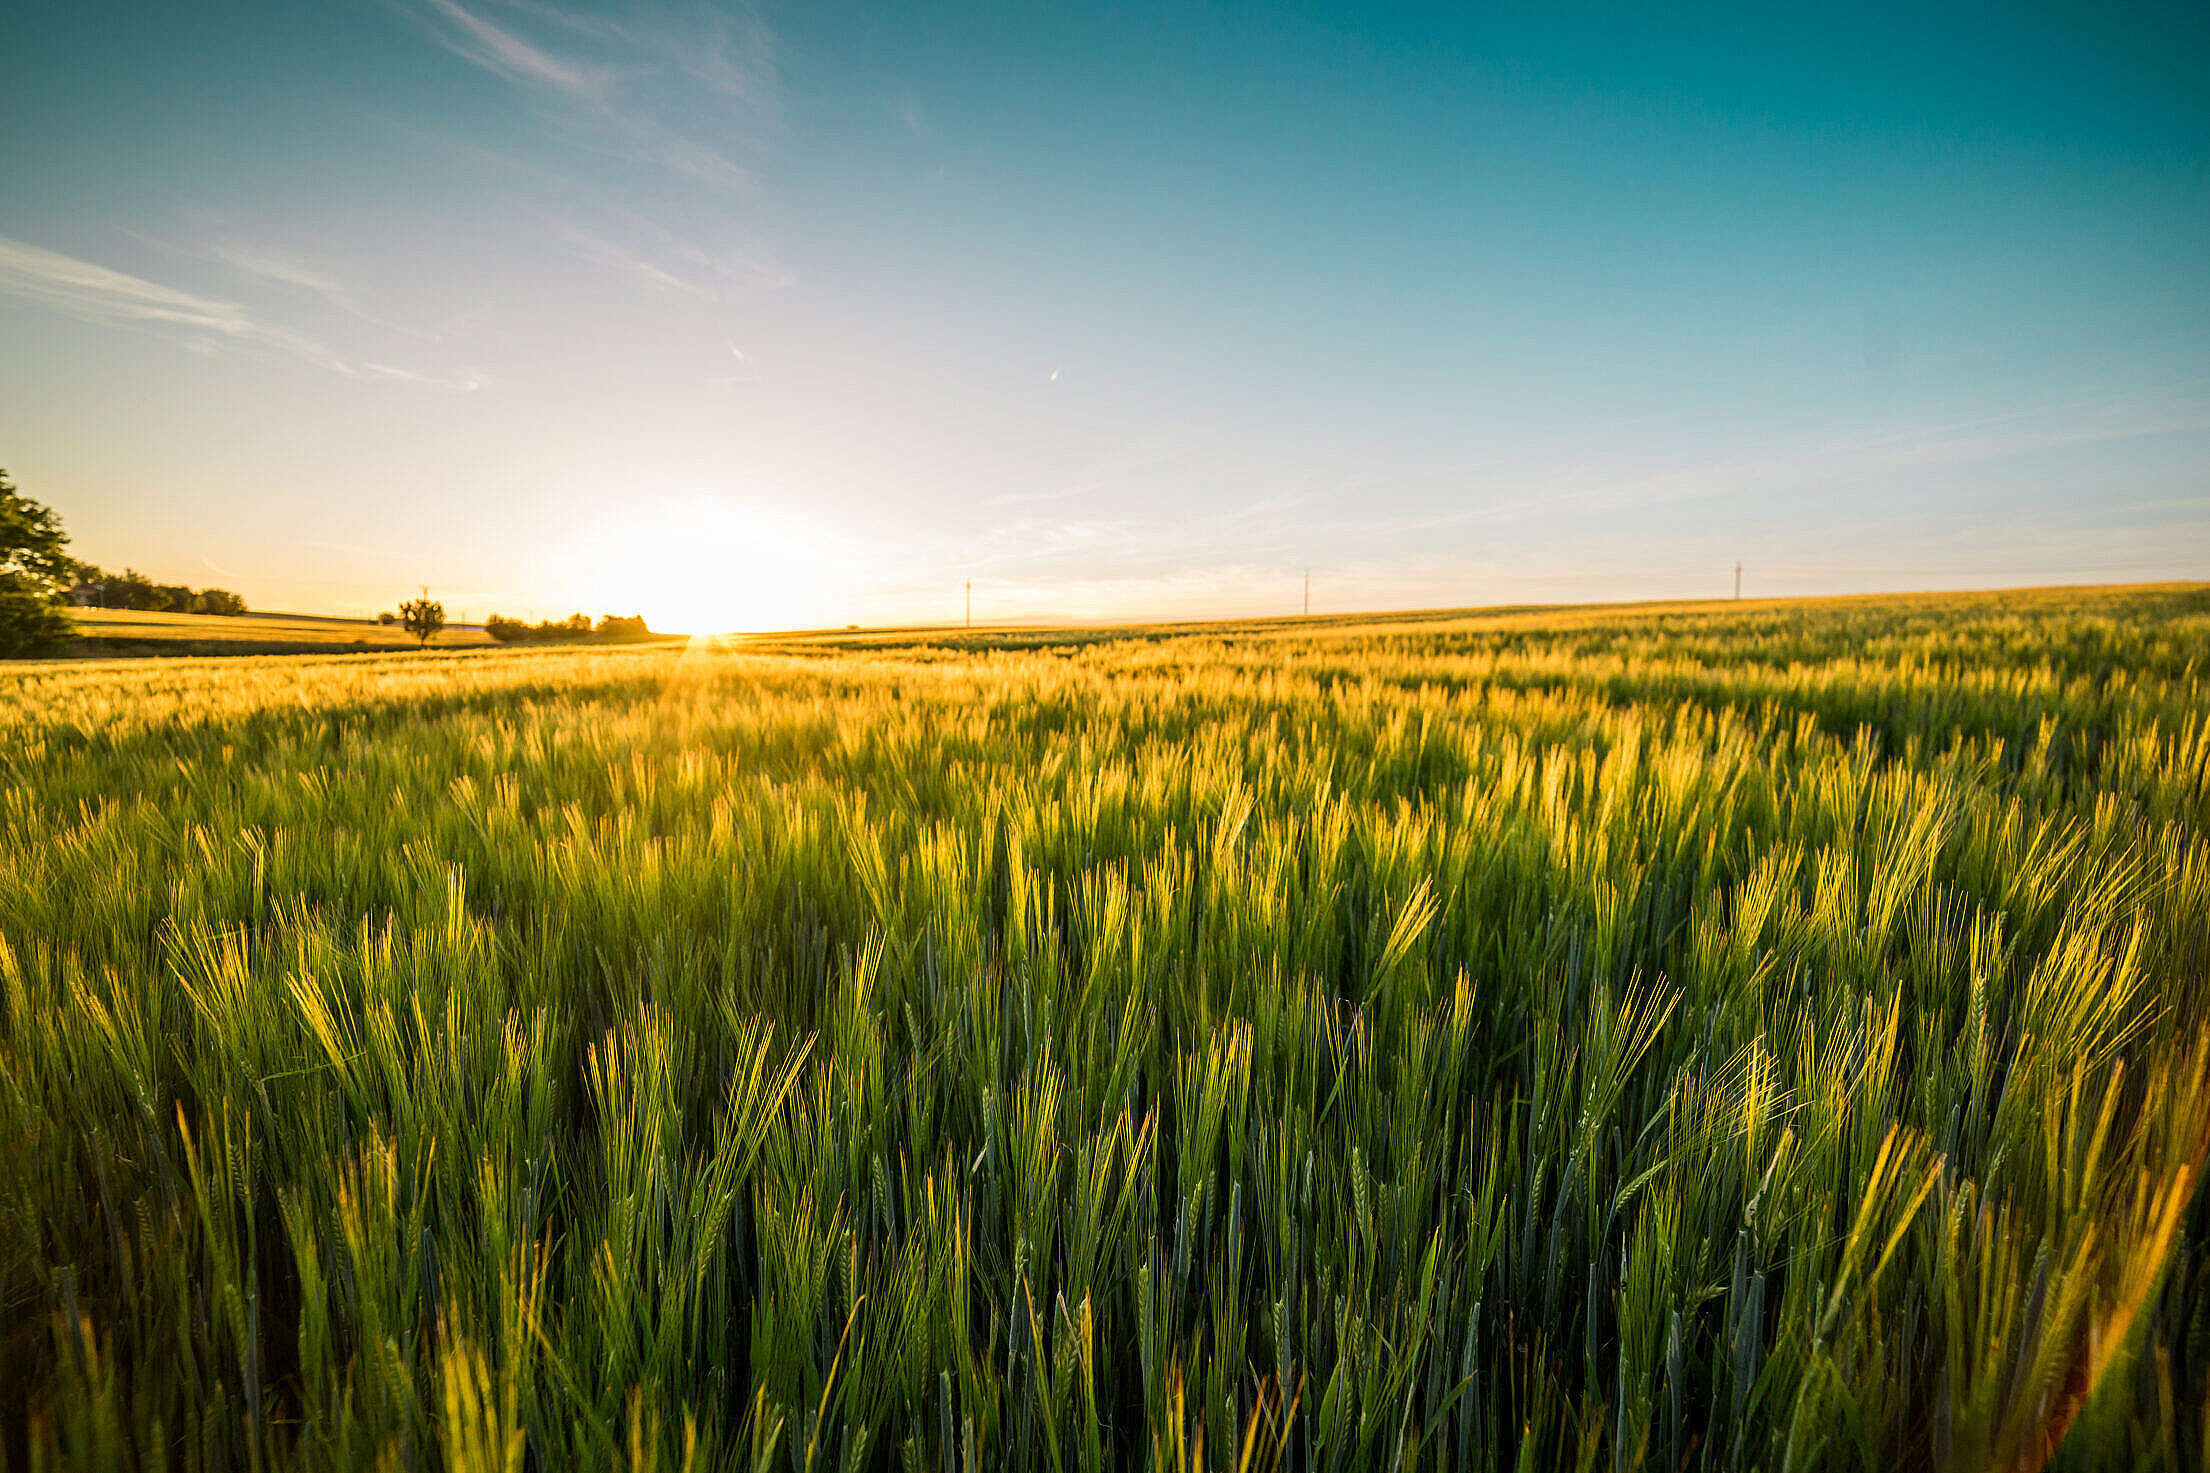 Sunset Over The Wheat Field Free Stock Photo